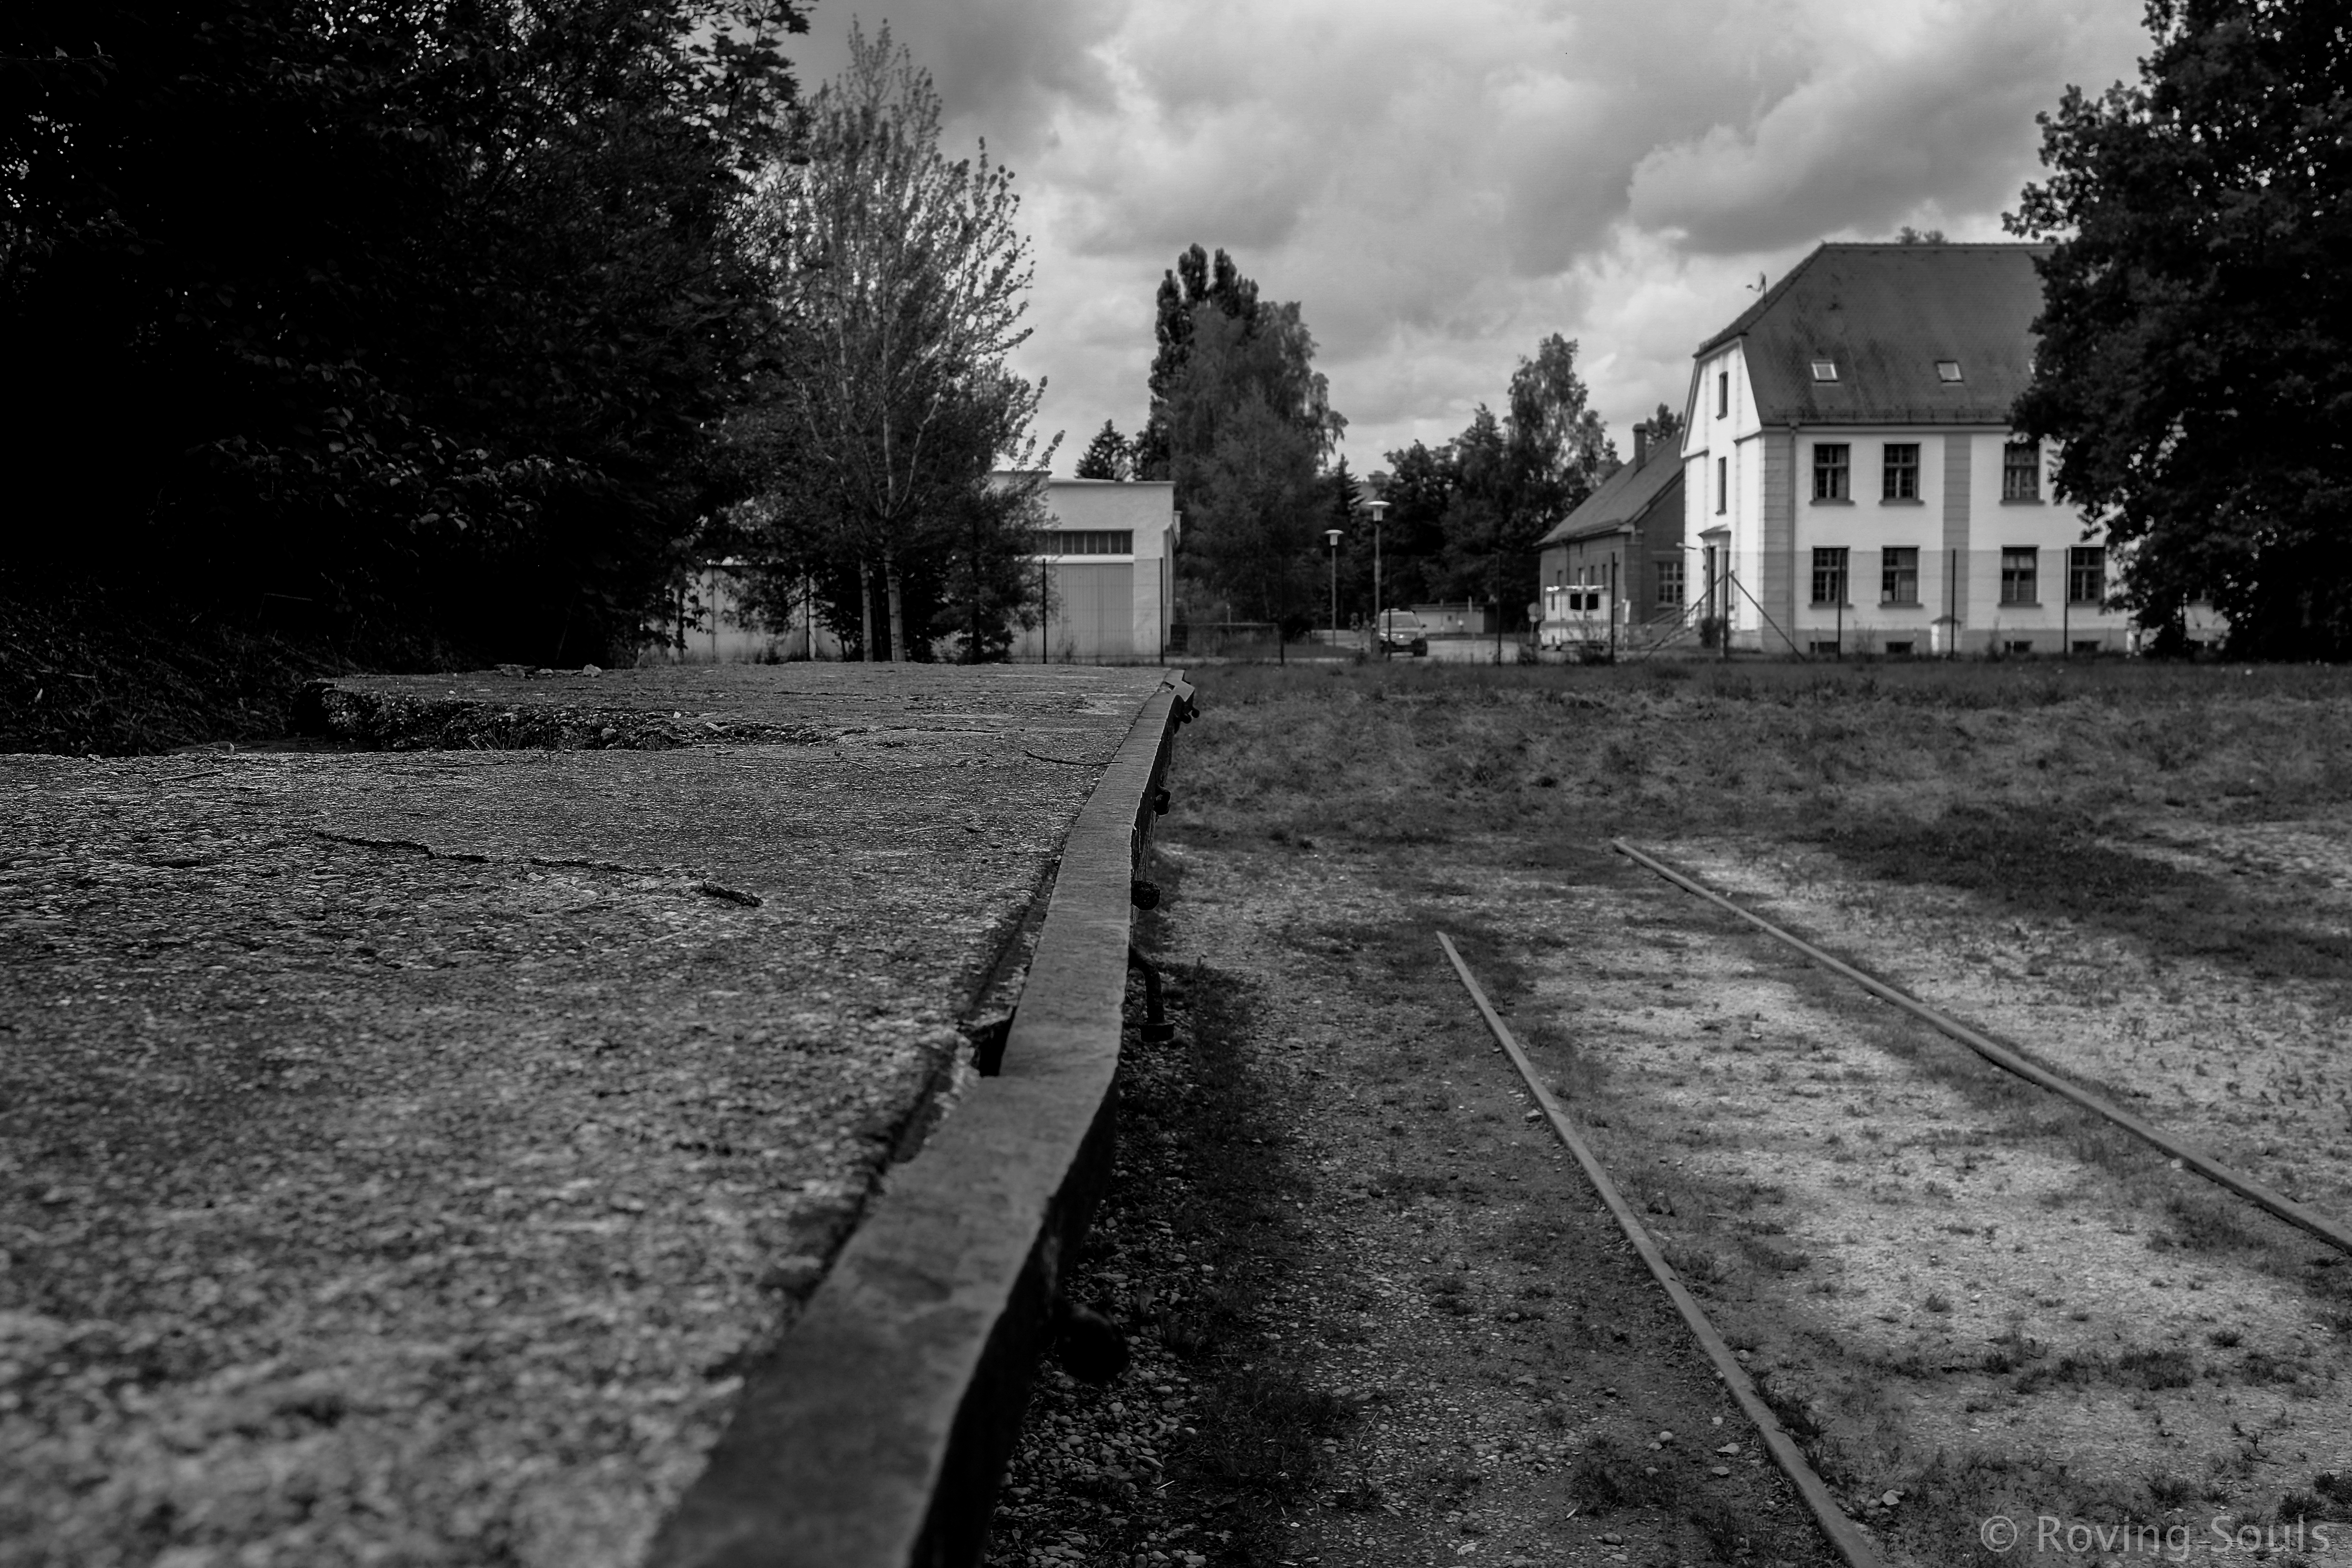 Dachau, Germany August 2016